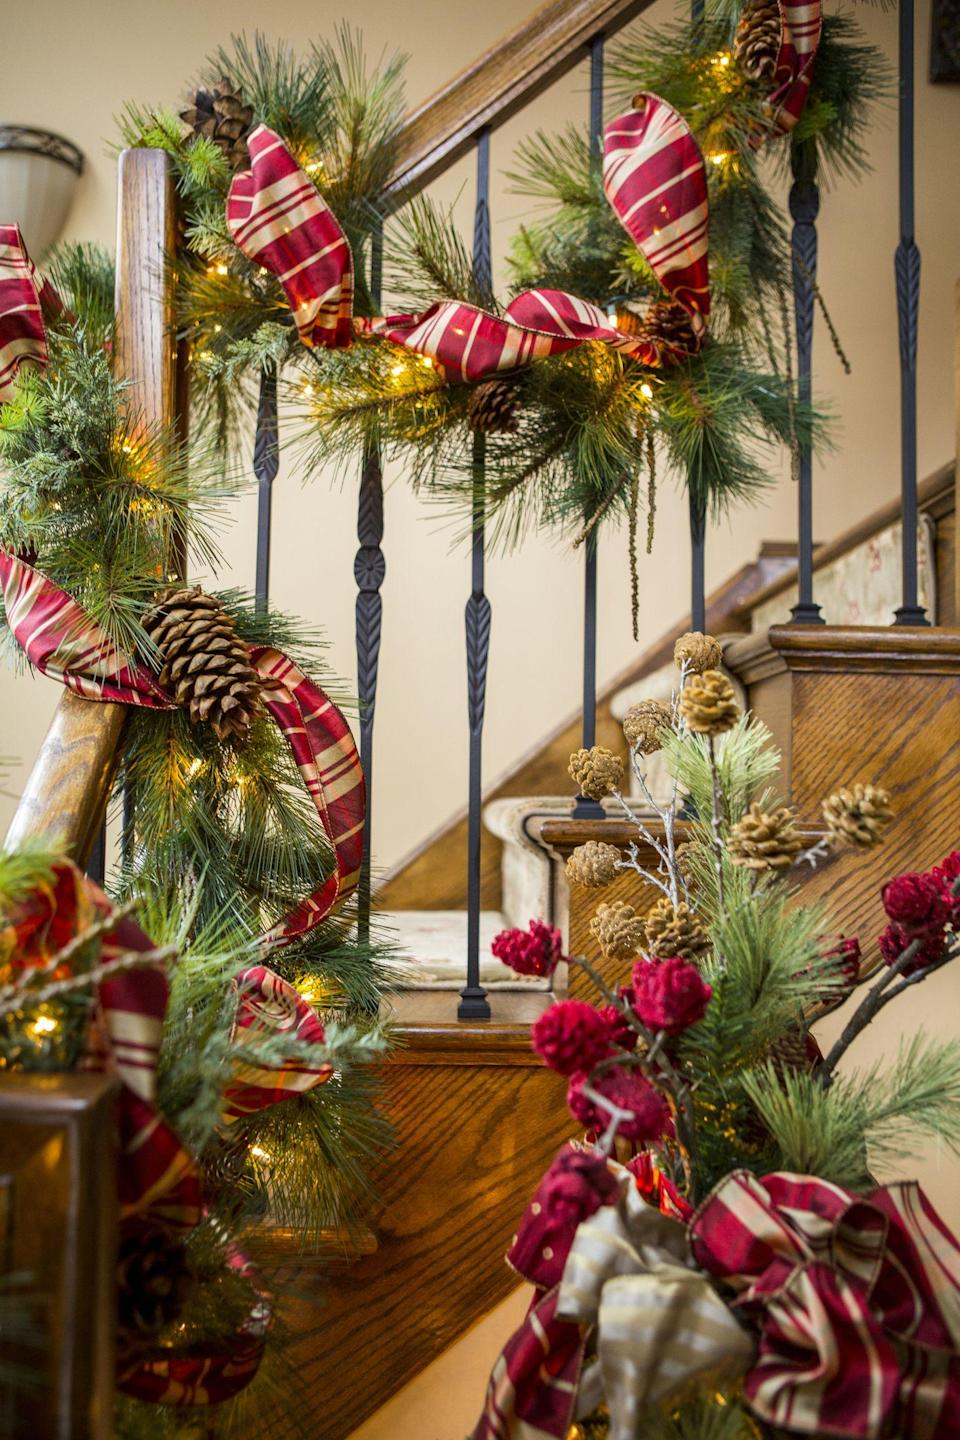 """<p>When it comes to <a href=""""https://www.thepioneerwoman.com/home-lifestyle/crafts-diy/g33549660/christmas-decoration-ideas/"""" rel=""""nofollow noopener"""" target=""""_blank"""" data-ylk=""""slk:Christmas decorations"""" class=""""link rapid-noclick-resp"""">Christmas decorations</a>, a <a href=""""https://www.thepioneerwoman.com/holidays-celebrations/a37668896/how-to-keep-christmas-tree-alive/"""" rel=""""nofollow noopener"""" target=""""_blank"""" data-ylk=""""slk:Christmas tree"""" class=""""link rapid-noclick-resp"""">Christmas tree </a>is always the center of attention. But if you have a stairway in your home—whether it's in the foyer or another part of the house—the holidays are its moment to shine! Christmas stair decorations can be as simple or as ornate as you like. <a href=""""https://www.thepioneerwoman.com/holidays-celebrations/g37575829/christmas-garland-ideas/"""" rel=""""nofollow noopener"""" target=""""_blank"""" data-ylk=""""slk:Christmas garland"""" class=""""link rapid-noclick-resp"""">Christmas garland</a> made with live greens look beautiful and smell just as lovely. Pretty lights also make a great addition to Christmas decor for stair railings, and there are so many affordable options with battery-operated strings on timers—so you don't have to worry about finding an outlet or tripping on cords. </p><p>If that seems like too much work, arrange a few small <a href=""""https://www.thepioneerwoman.com/home-lifestyle/gardening/g37711385/christmas-plants/"""" rel=""""nofollow noopener"""" target=""""_blank"""" data-ylk=""""slk:Christmas plants"""" class=""""link rapid-noclick-resp"""">Christmas plants</a> (such as <a href=""""https://www.thepioneerwoman.com/home-lifestyle/gardening/a37694453/poinsettia-care/"""" rel=""""nofollow noopener"""" target=""""_blank"""" data-ylk=""""slk:poinsettias"""" class=""""link rapid-noclick-resp"""">poinsettias</a>!) and decorative lanterns at the bottom of your stairs, or place LED candles on every other step. This is a super simple way to make the stairs look special without a lot of fussing. Another fun idea is taking your collection of <a href=""""https://"""